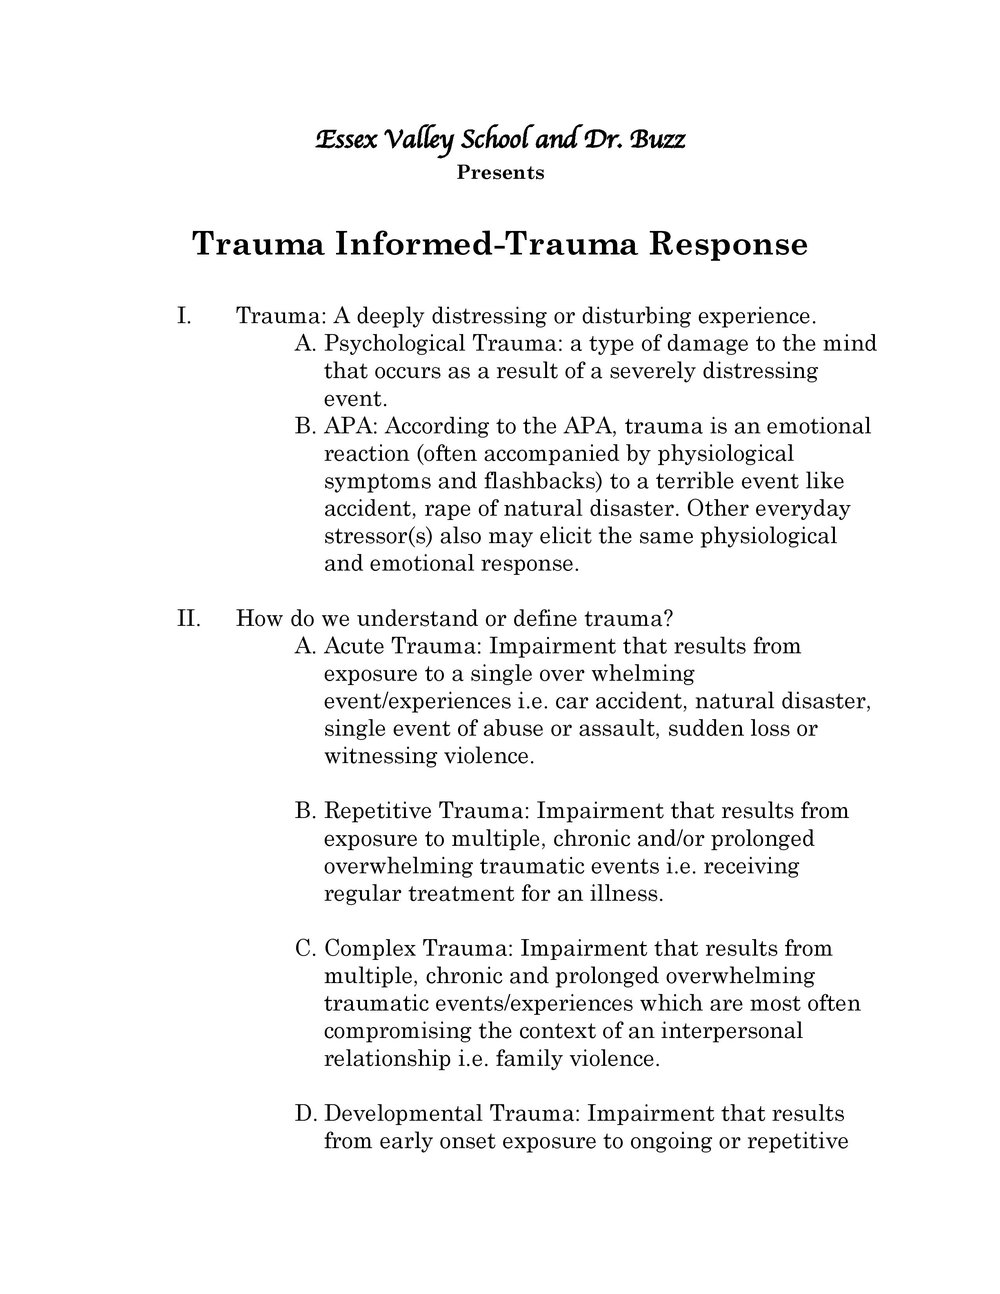 TEssex Valley Flyer Trauma Seminar 2018-page-001.jpg